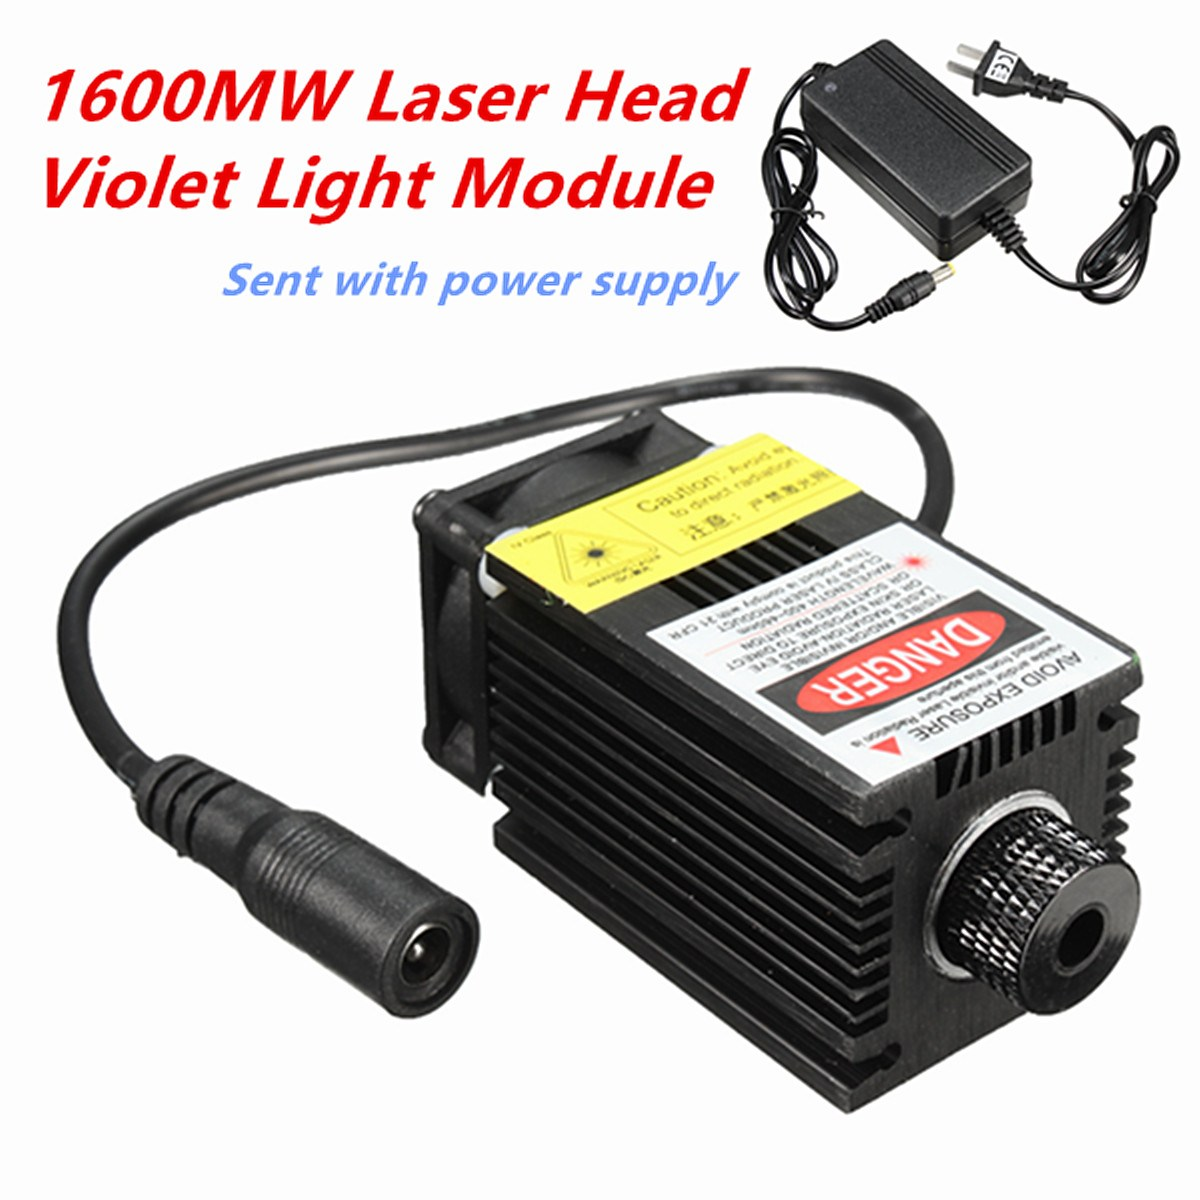 12V 1.6W 1600MW Laser Module Engraving Head For DIY USB CNC Cutting Printing Machine + Power Supply laser module industrial laser head red laser spot heat dissipation can work for a long time